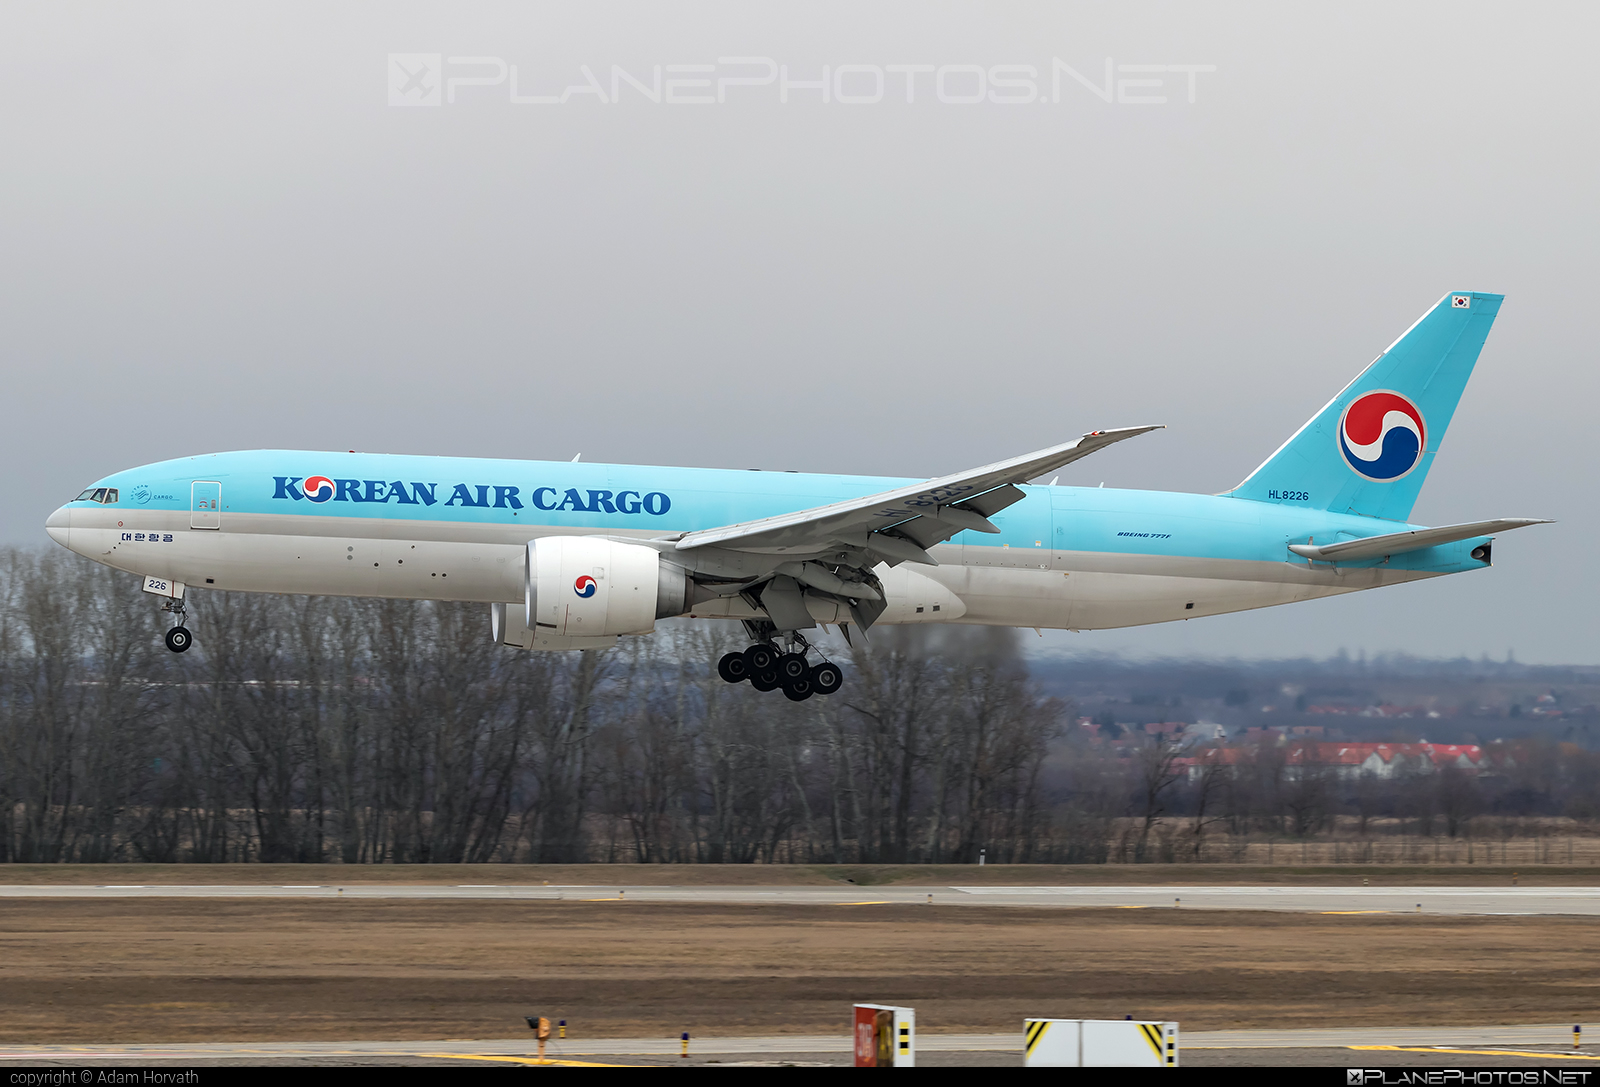 Boeing 777F - HL8226 operated by Korean Air Cargo #b777 #b777f #b777freighter #boeing #boeing777 #koreanair #koreanaircargo #tripleseven